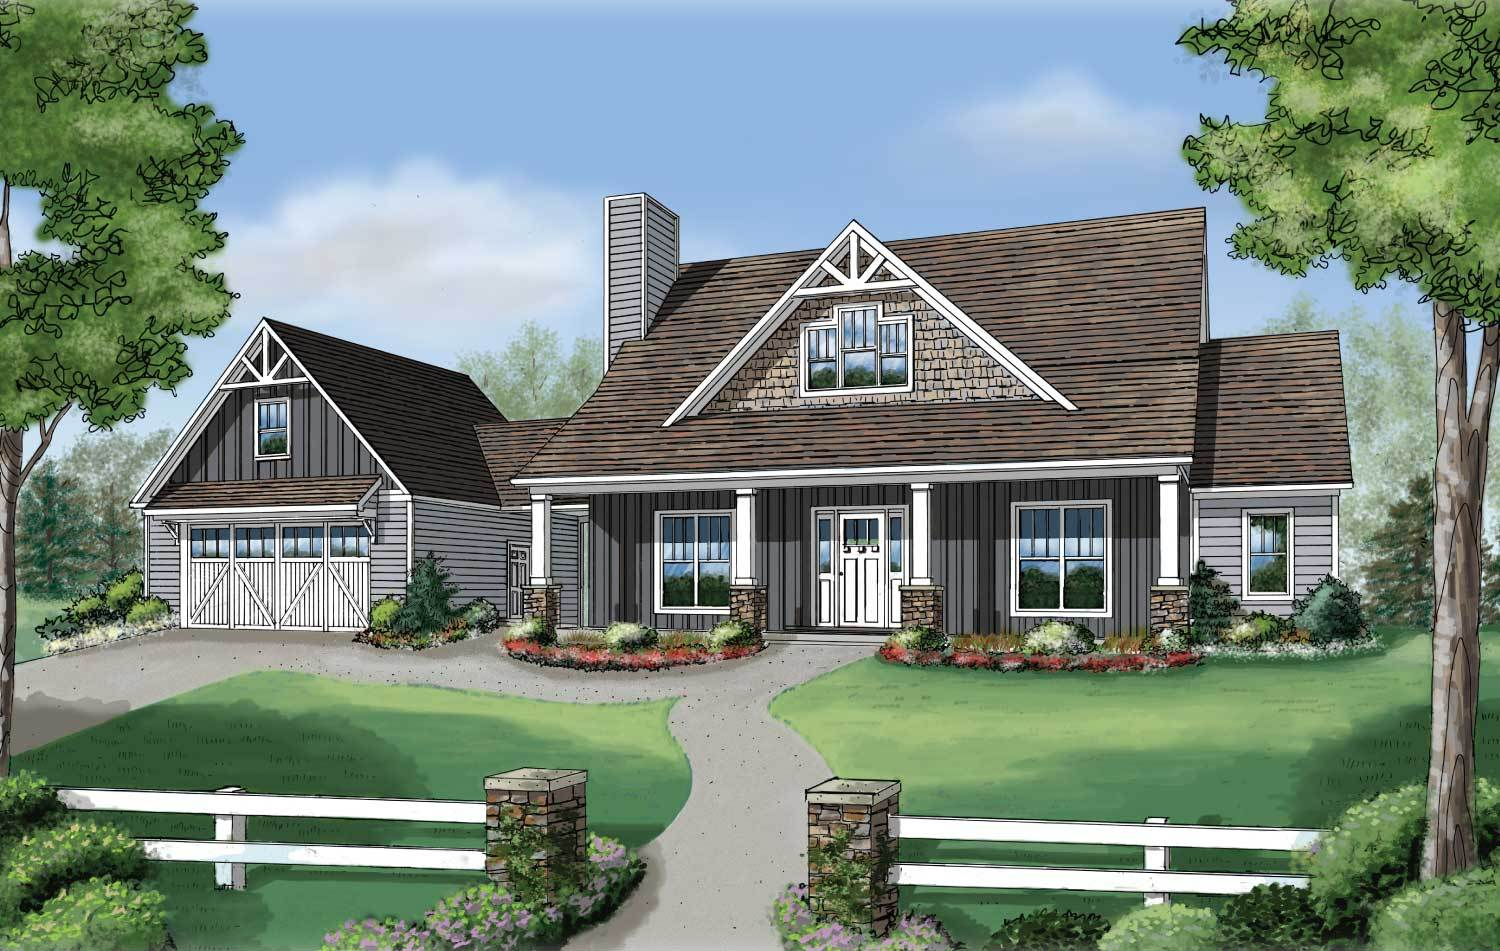 Single Family for Sale at Build On Your Lot - Albany - Dogwood Ii A 1220 N. Westover Blvd. Albany, Georgia 31707 United States